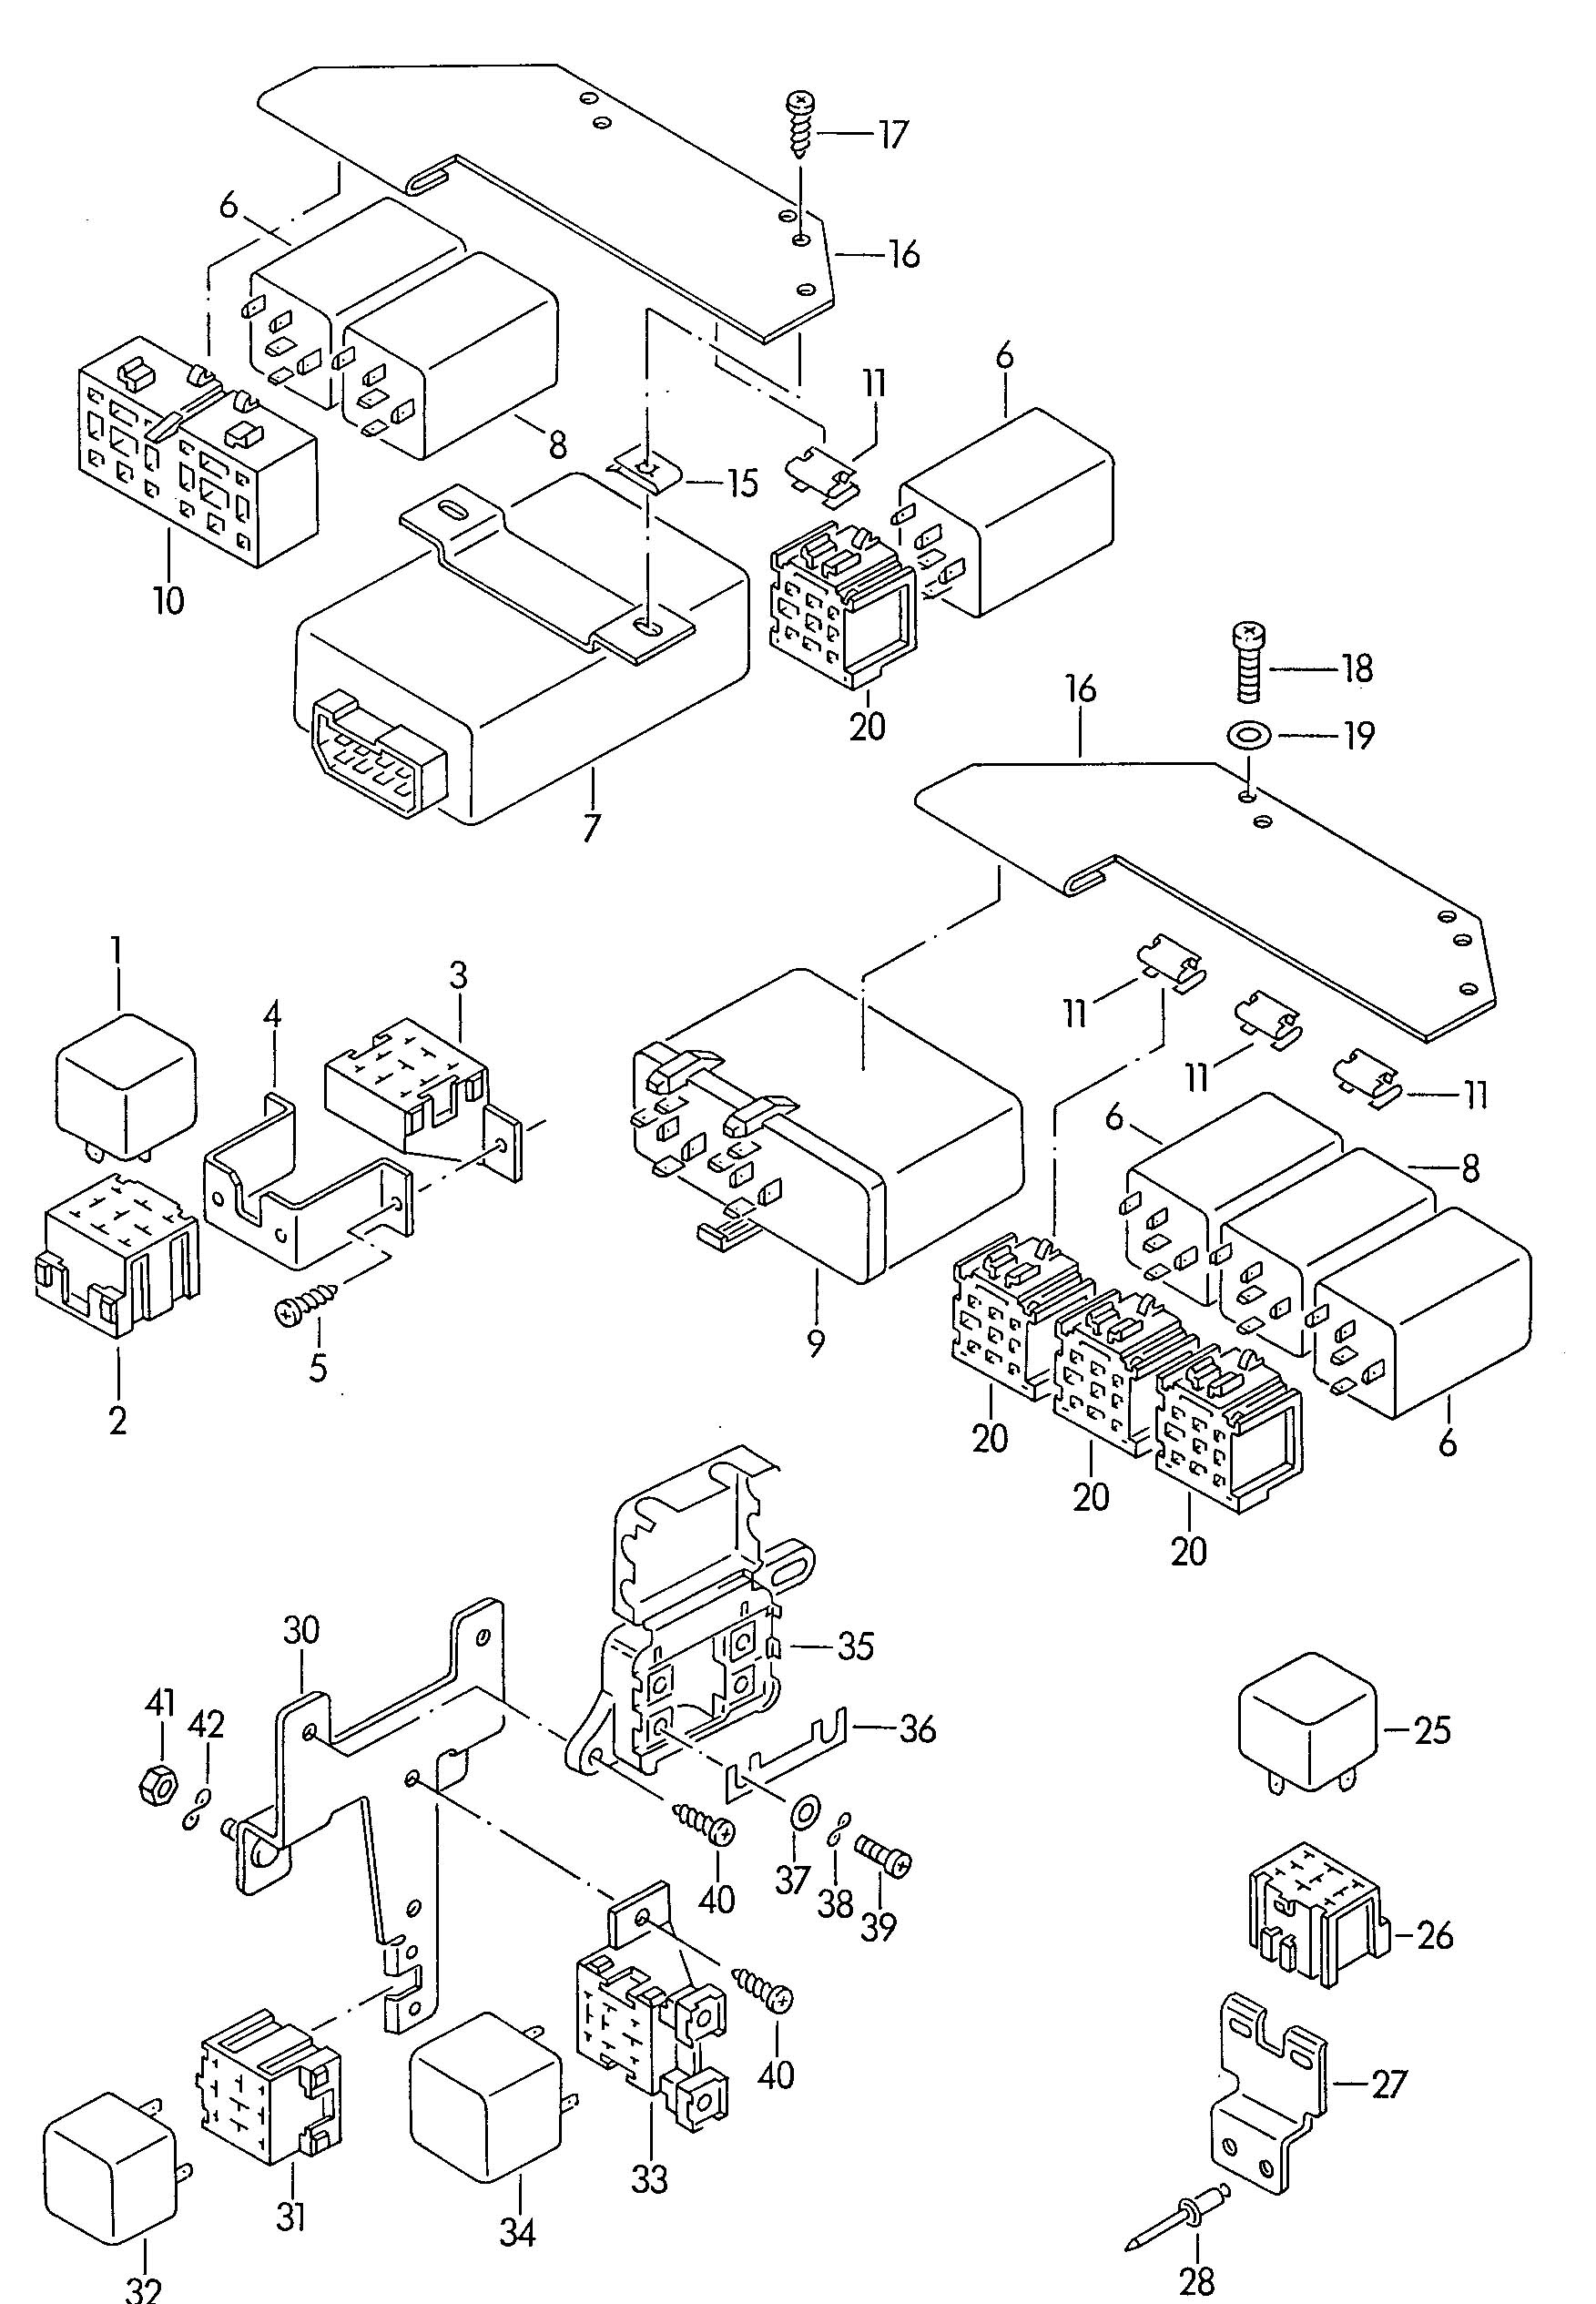 [DIAGRAM] 1993 Vw Eurovan Wiring Diagram FULL Version HD